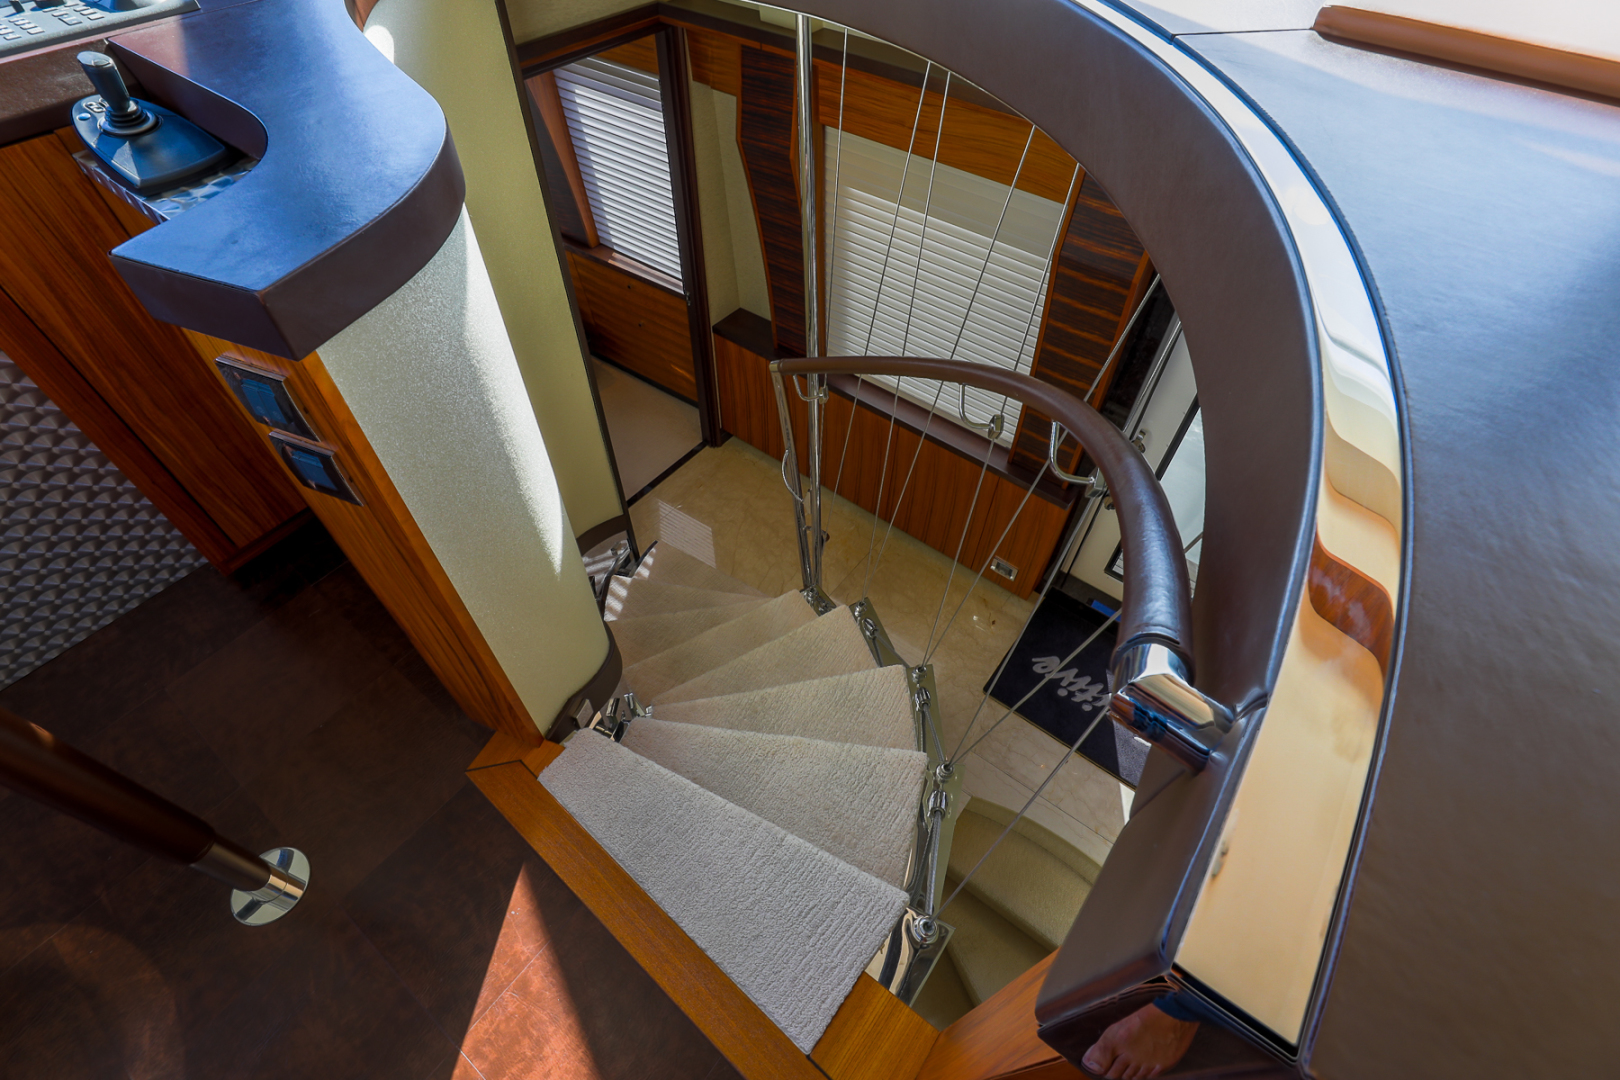 Northcoast-NC125 2011-FUGITIVE *Name Reserved* West Palm Beach-Florida-United States-Stairway to Lower Deck Foyer-1513483 | Thumbnail